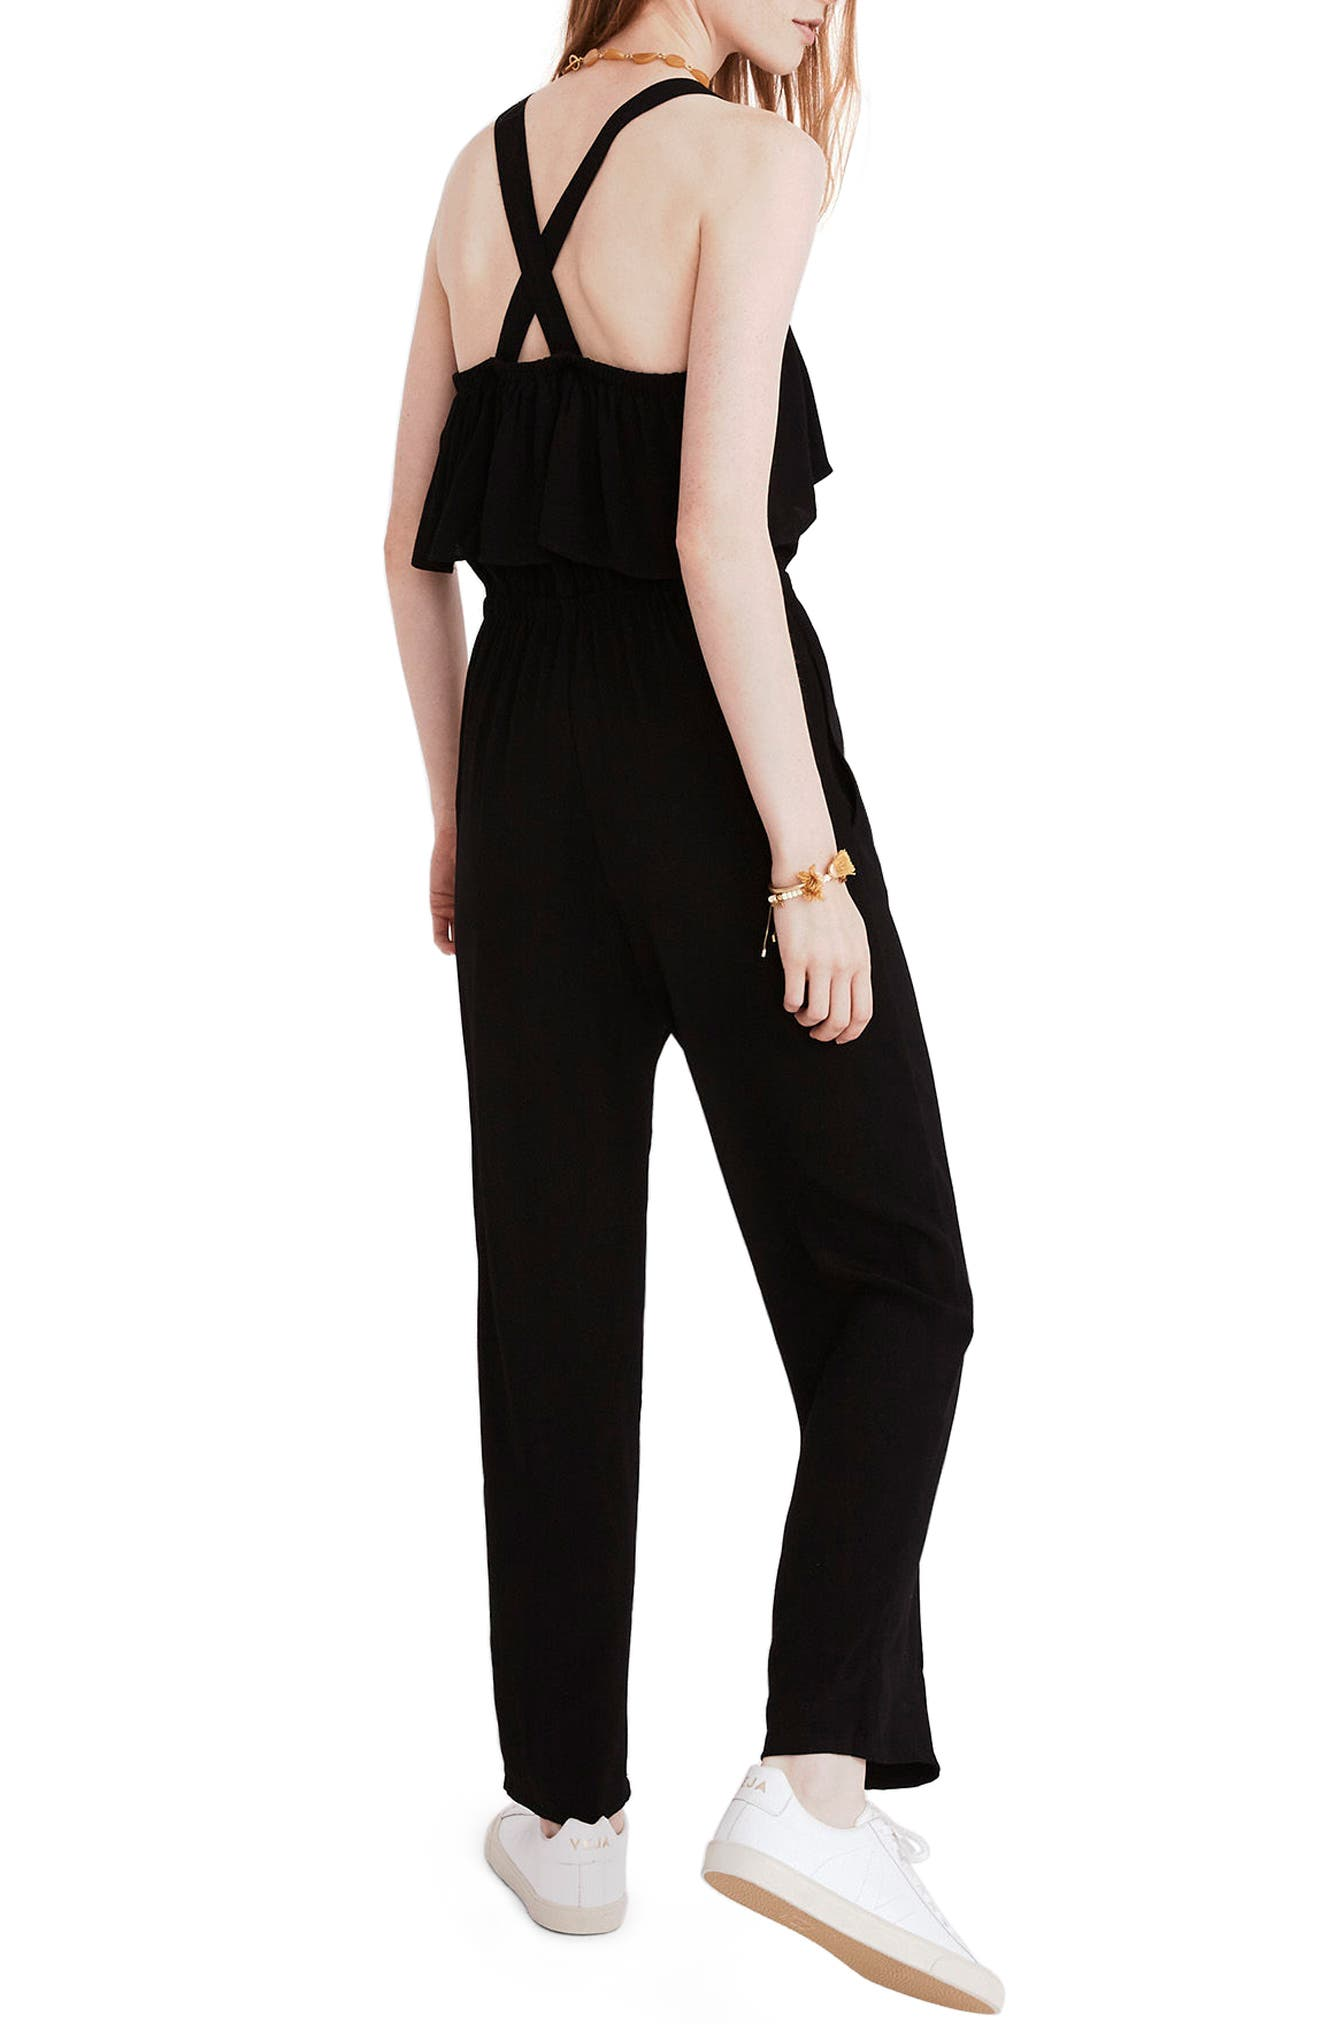 Apron Ruffle Jumpsuit,                             Alternate thumbnail 2, color,                             001